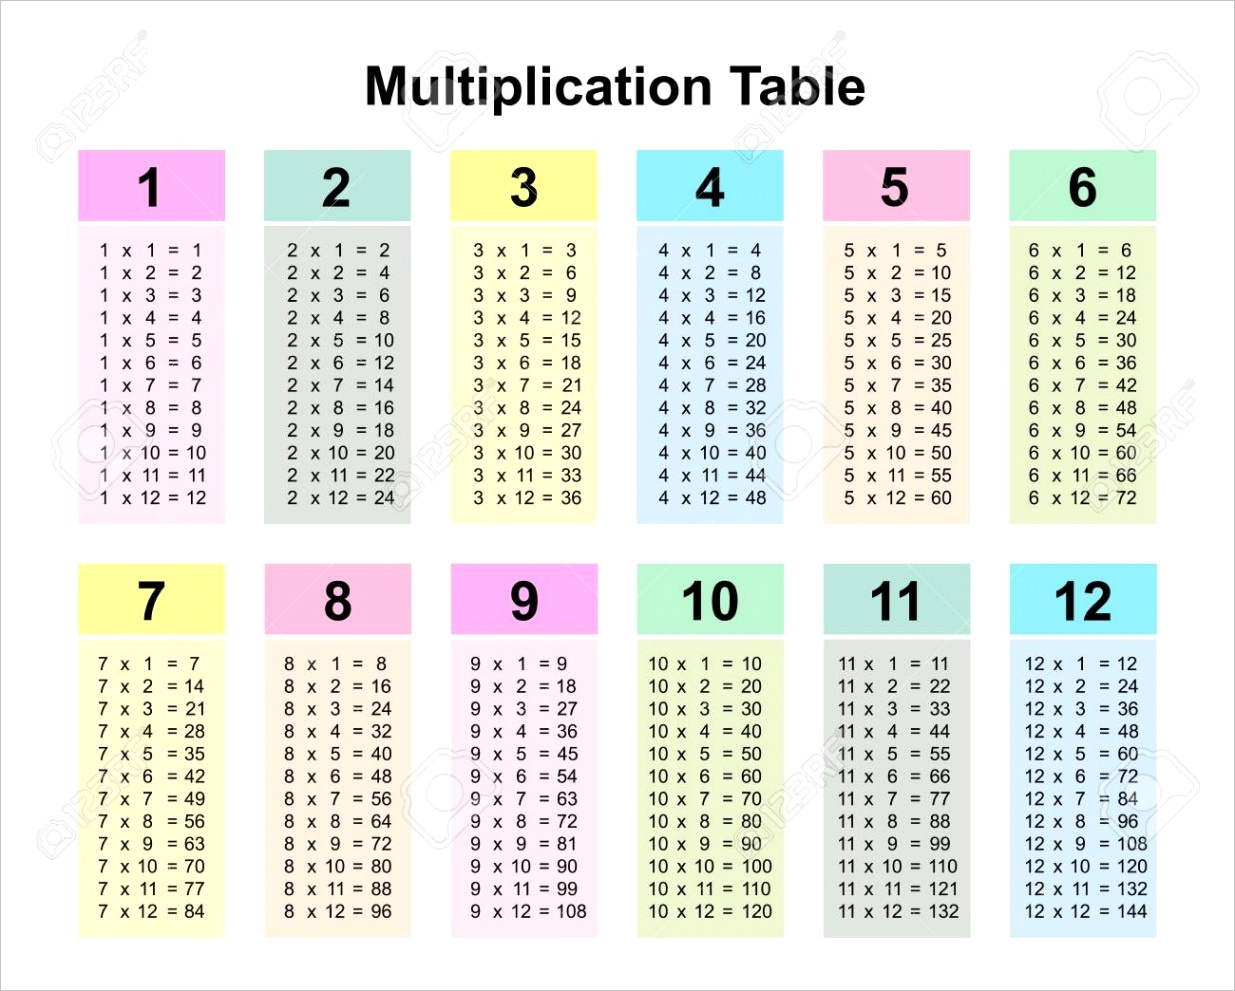 photo multiplication table chart or multiplication table printable vector illustration